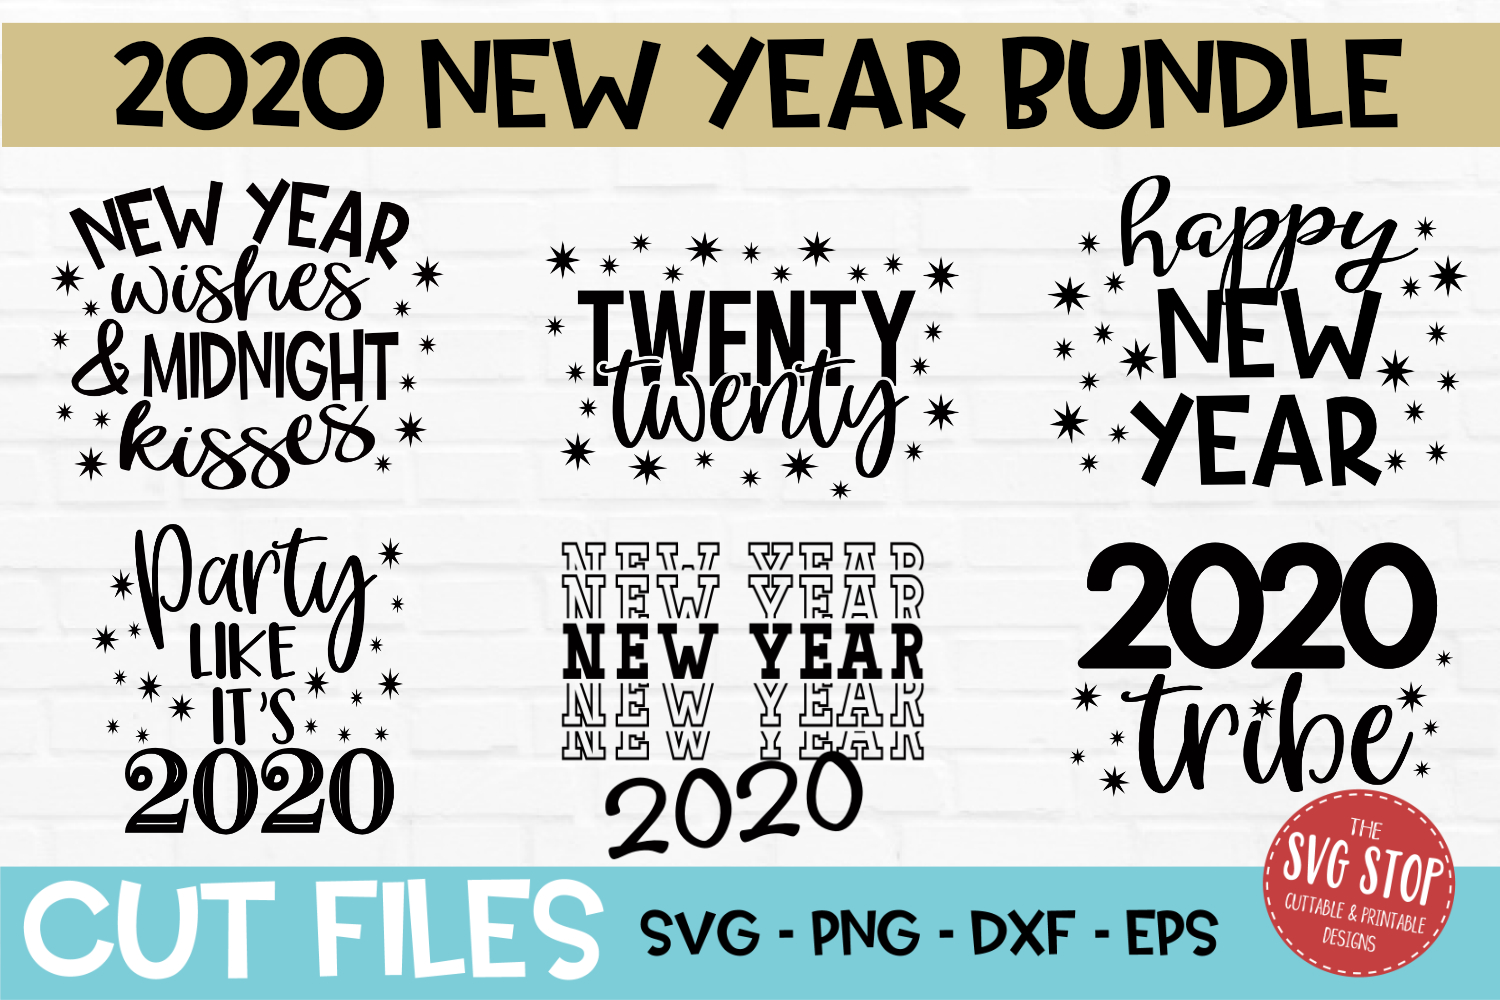 New Year Bundle SVG, PNG, DXF, EPS example image 1